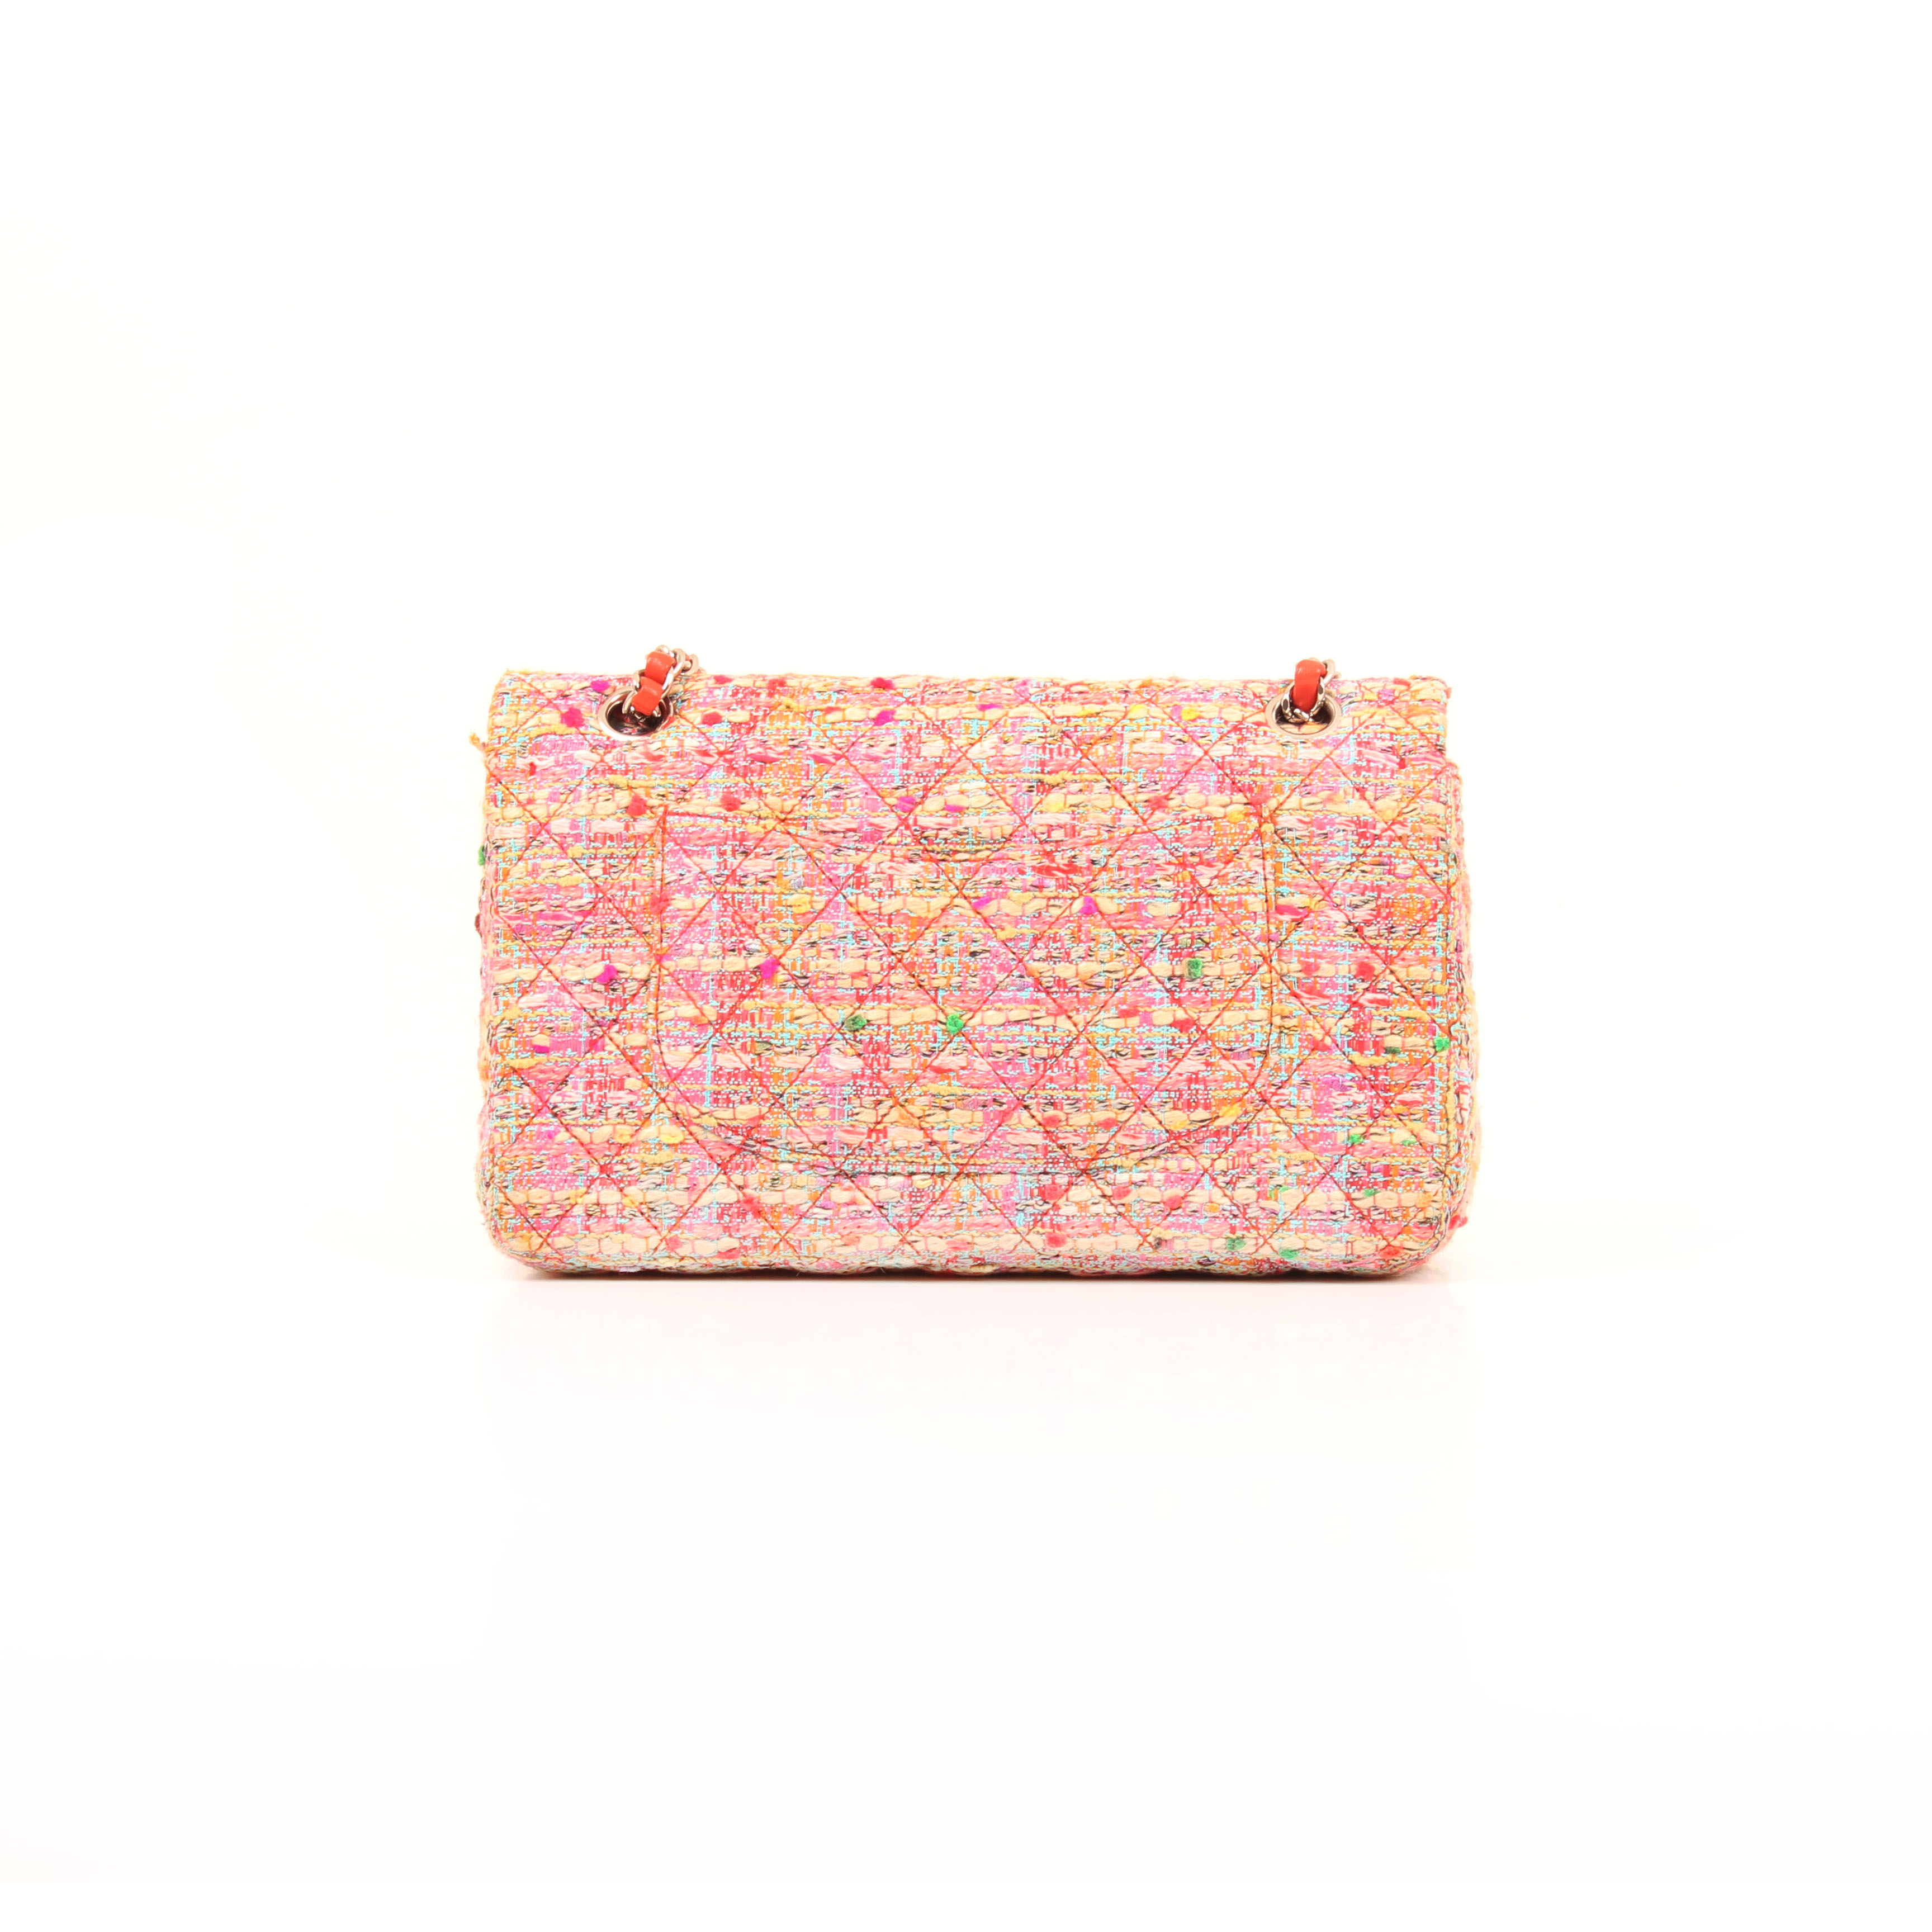 Back image from chanel timeless tweed pink multicolor neon double flap bag